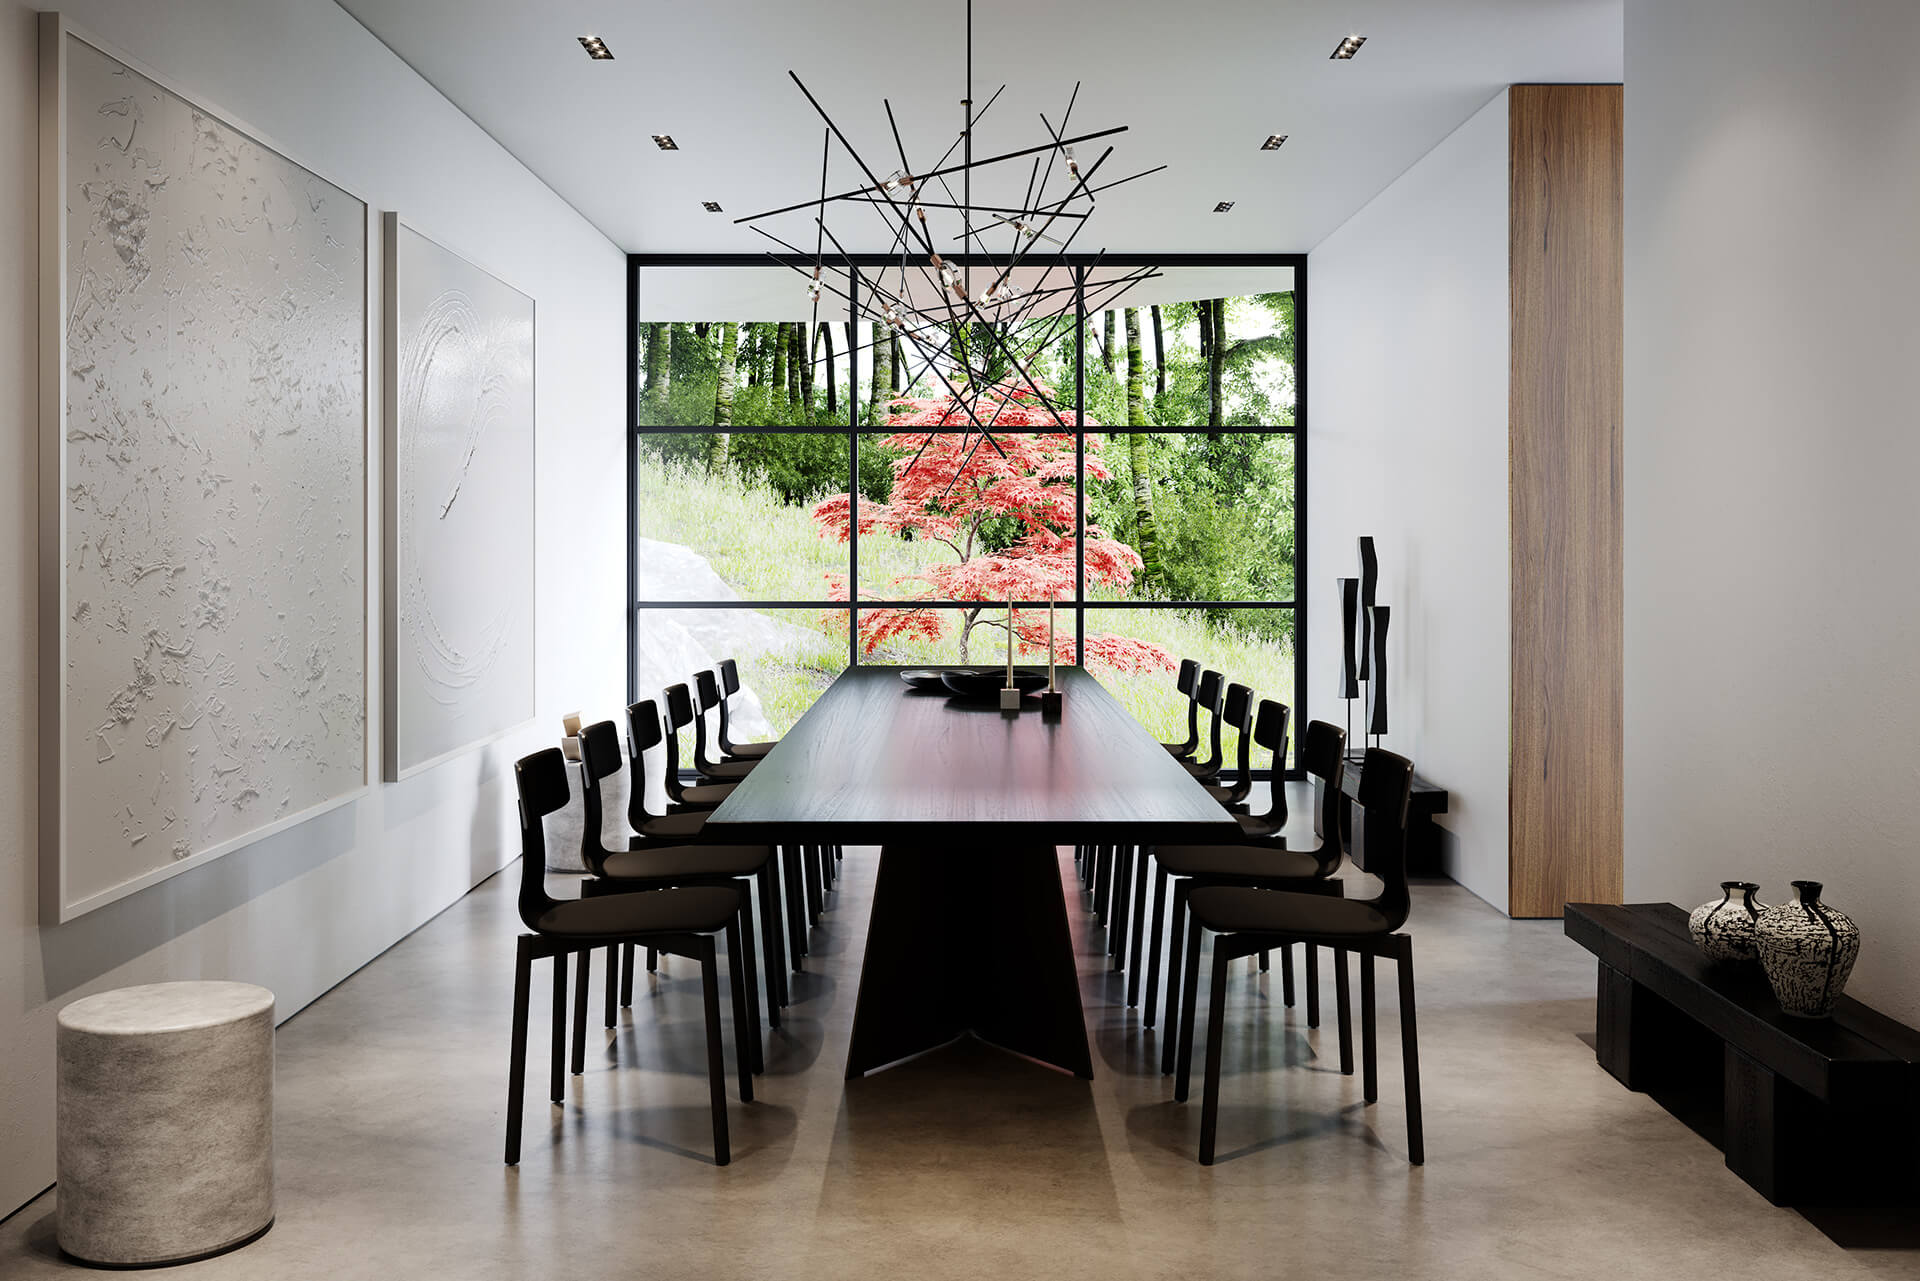 The dining area | Crestwood Residence by Ancerl Studio | STIRworld